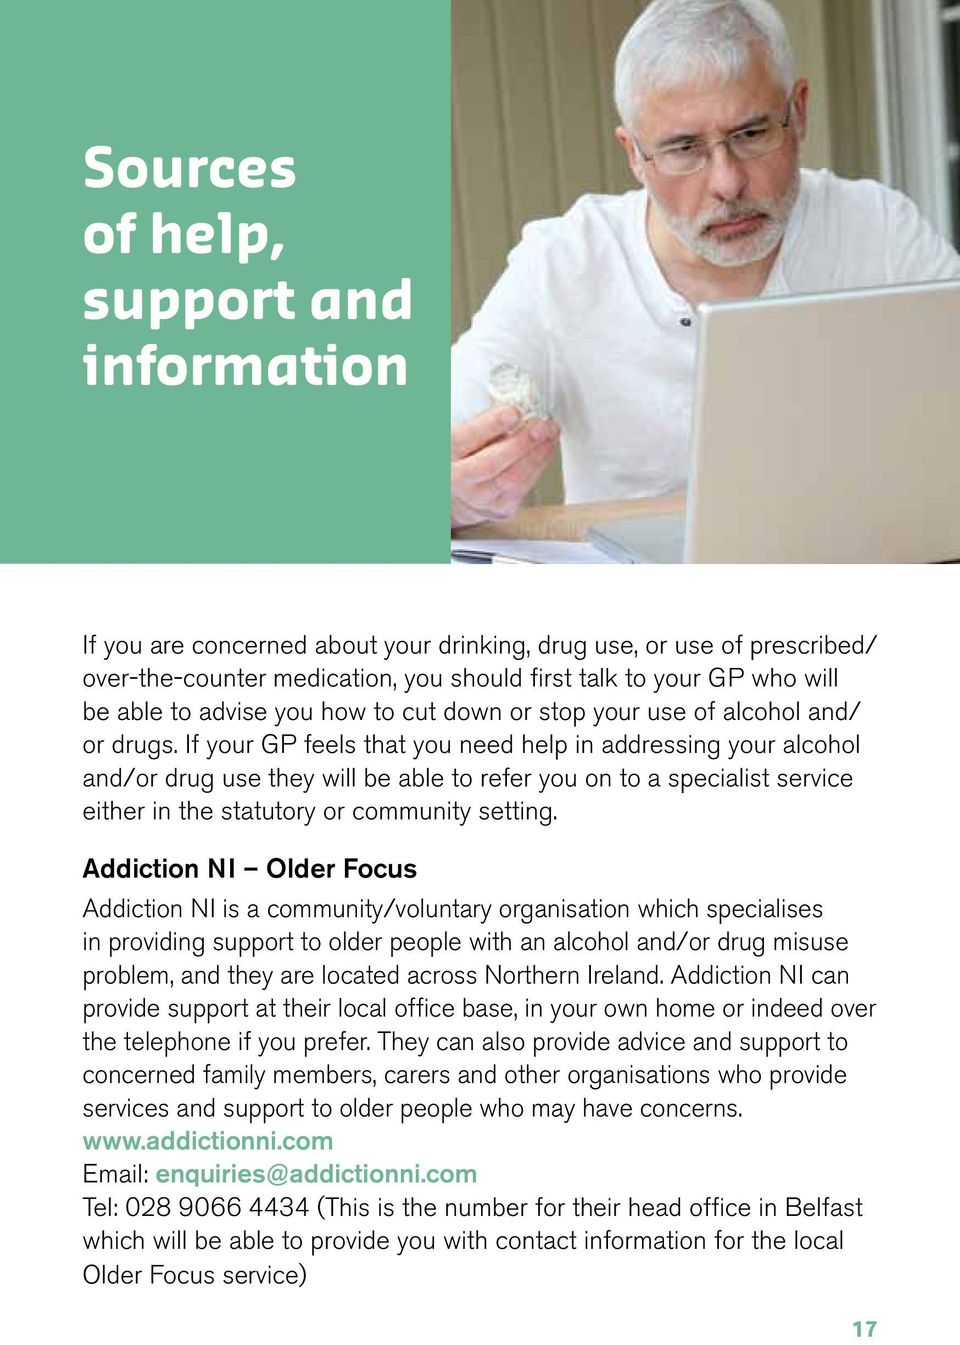 If your GP feels that you need help in addressing your alcohol and/or drug use they will be able to refer you on to a specialist service either in the statutory or community setting.